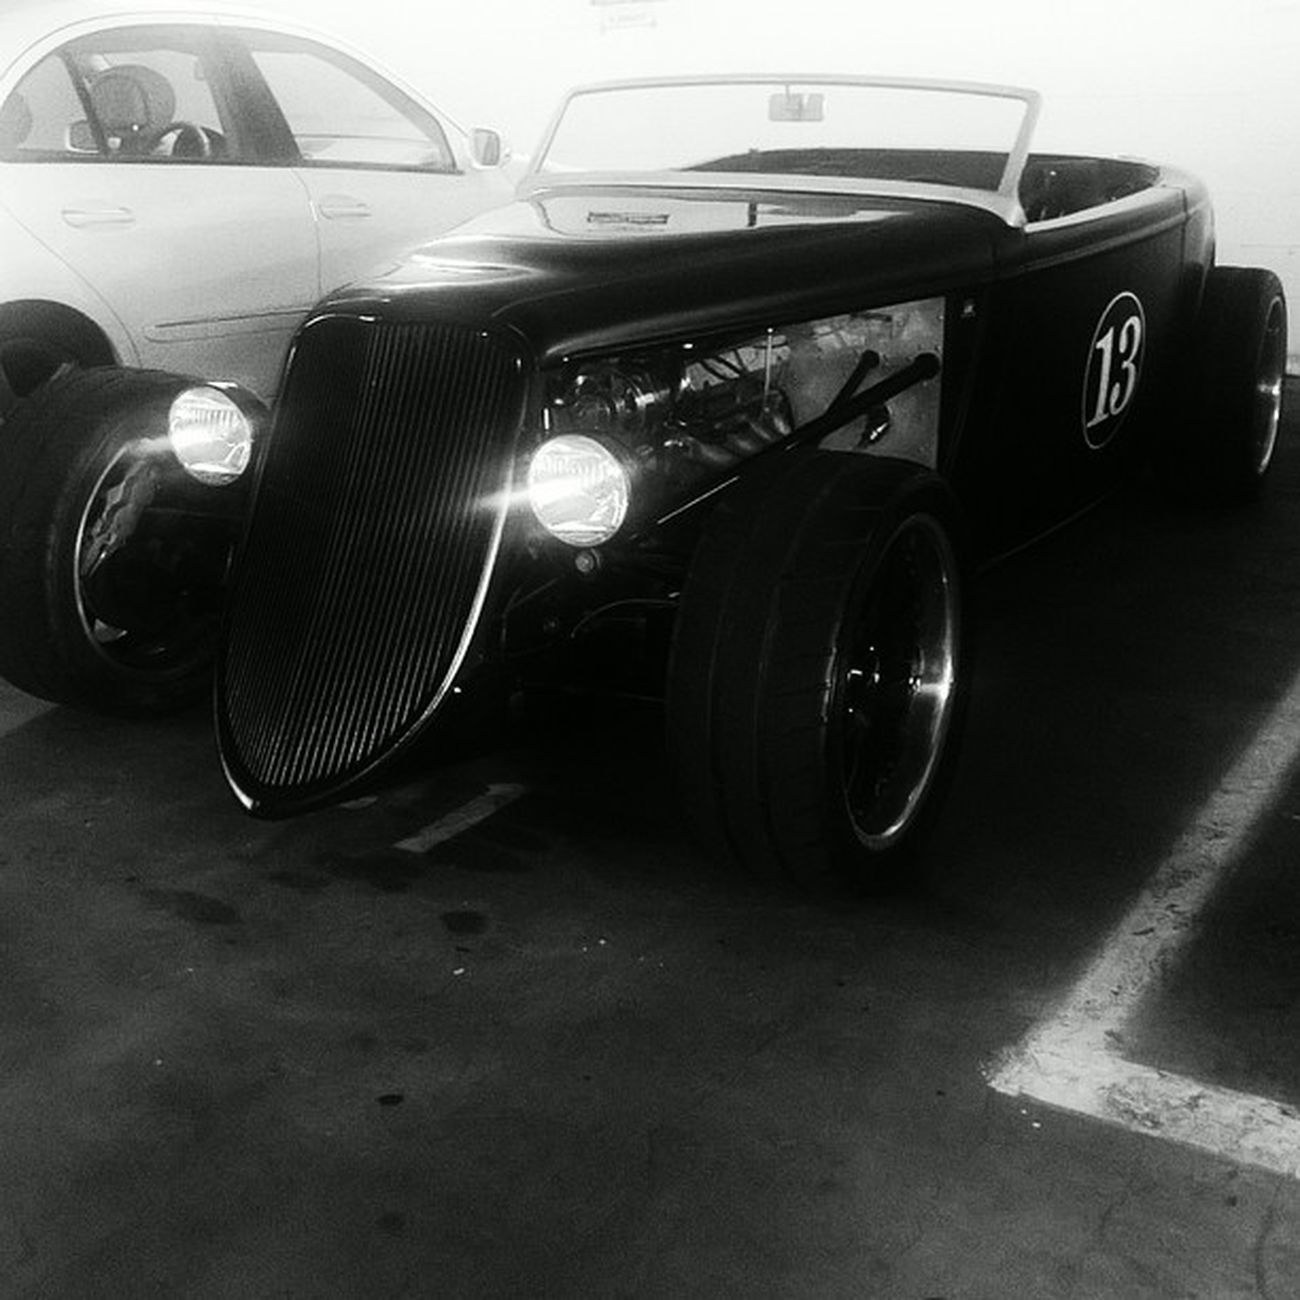 Look what I found in the employee parking lot!!! Yrflifestyle Westla Vintagecars Cars Beautiful Roadster Love Classiccars Convertible Santamonica UCLA  Millionaire Billionaire